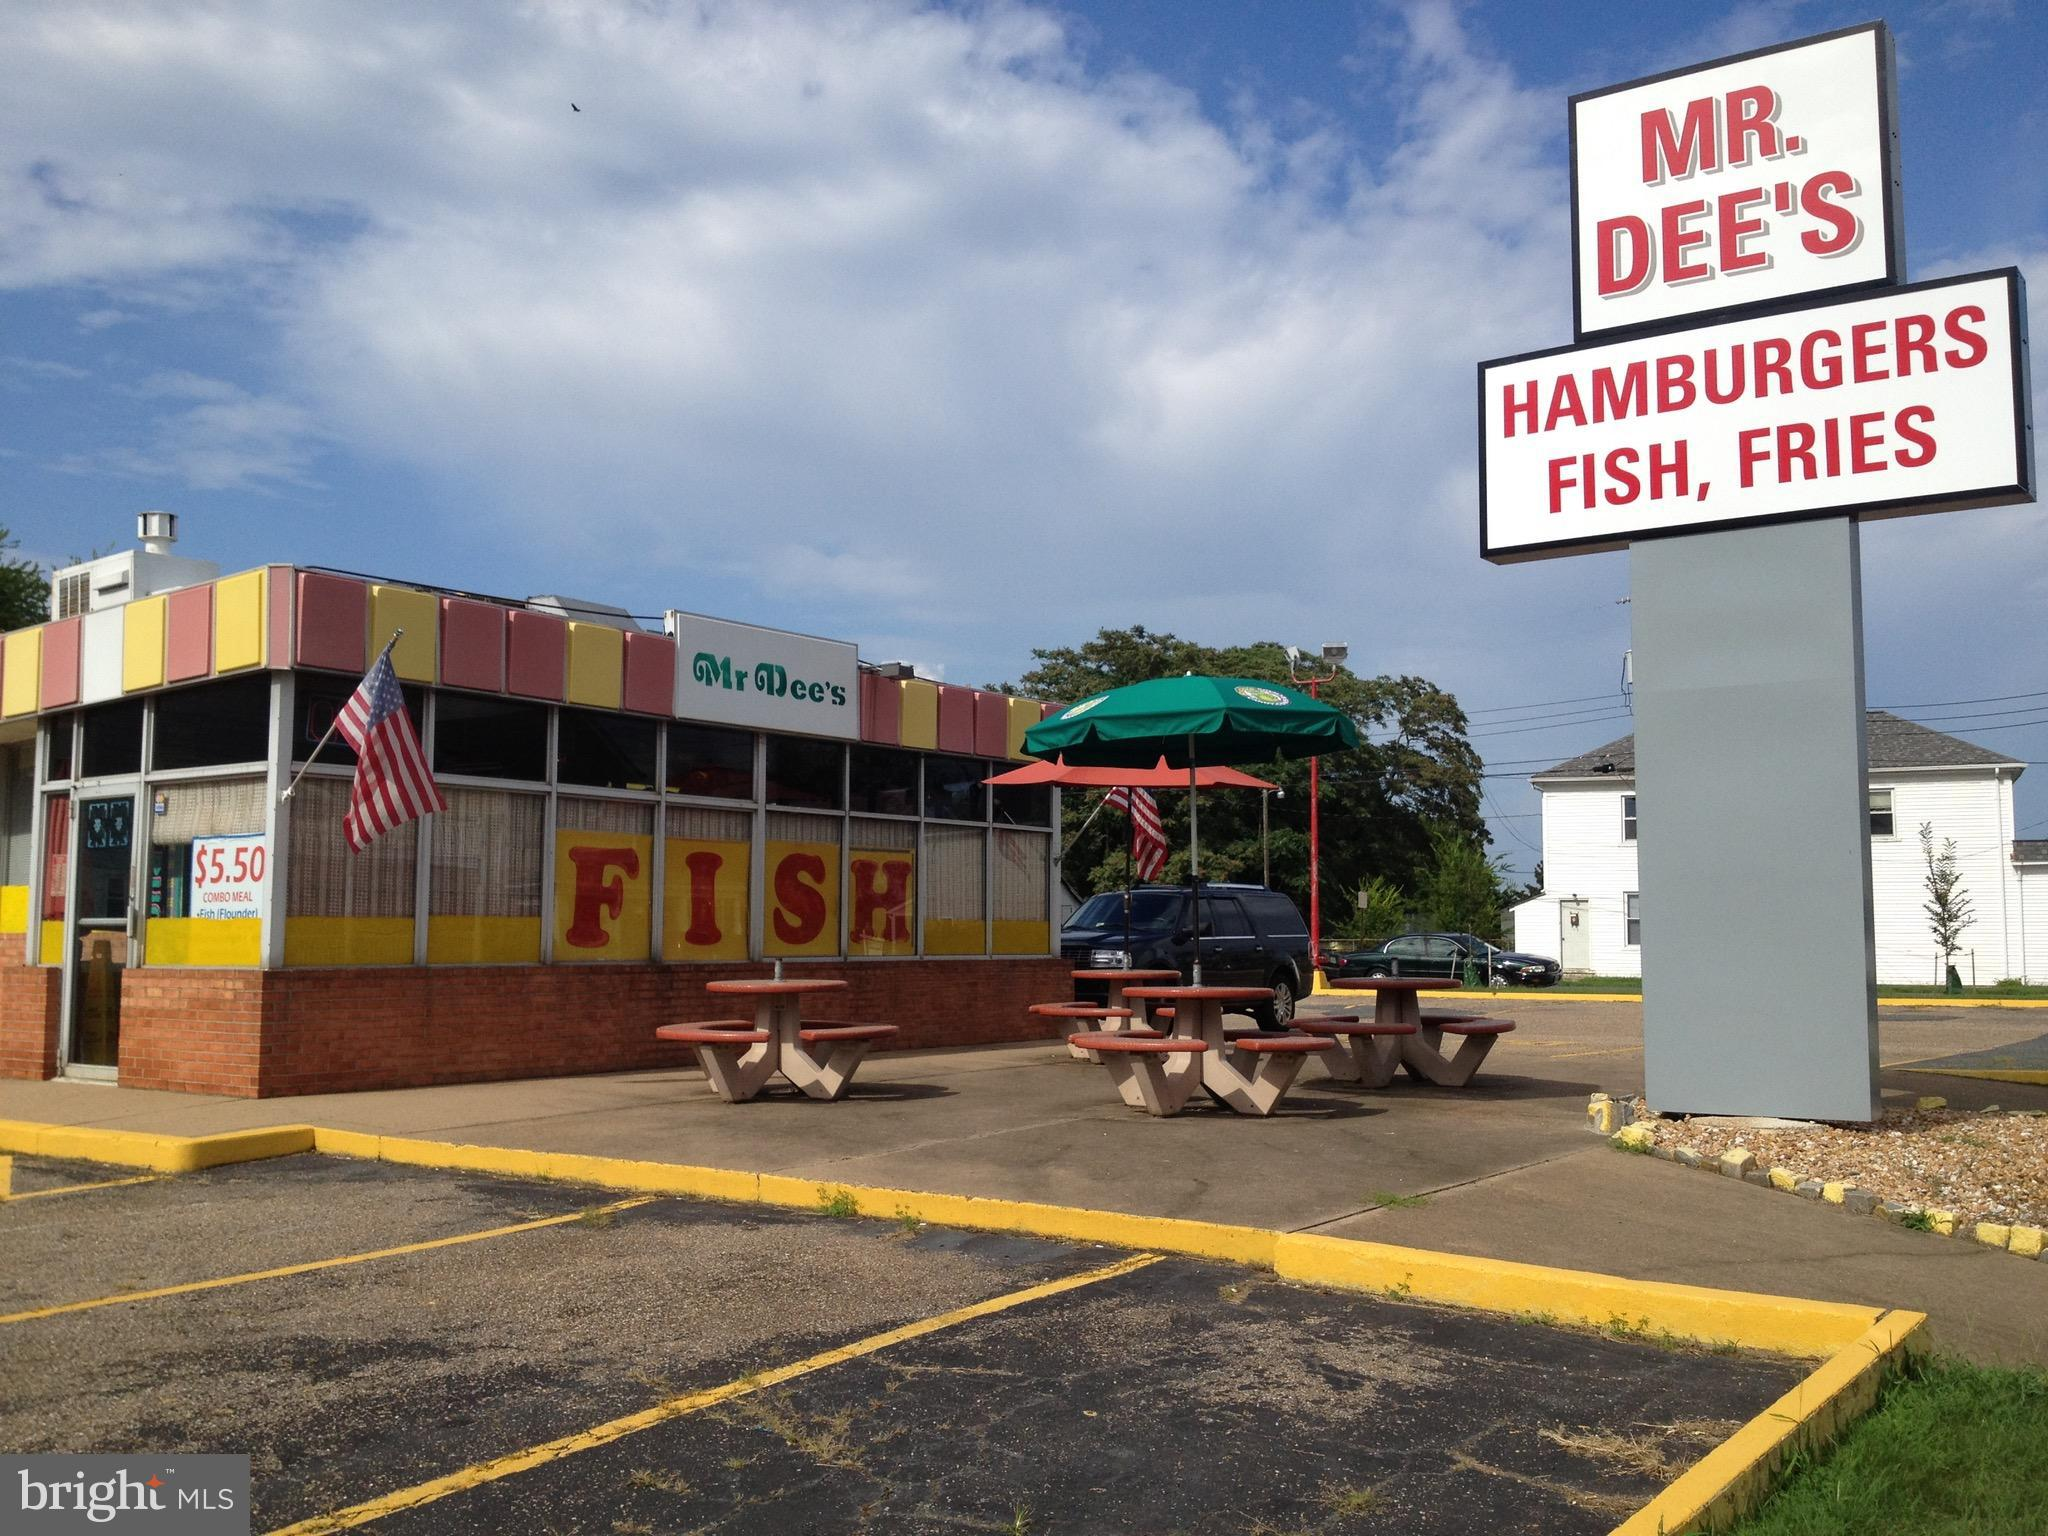 The Owner of Mason Dixon Cafe Purchases the Old Mr. Dee's Property